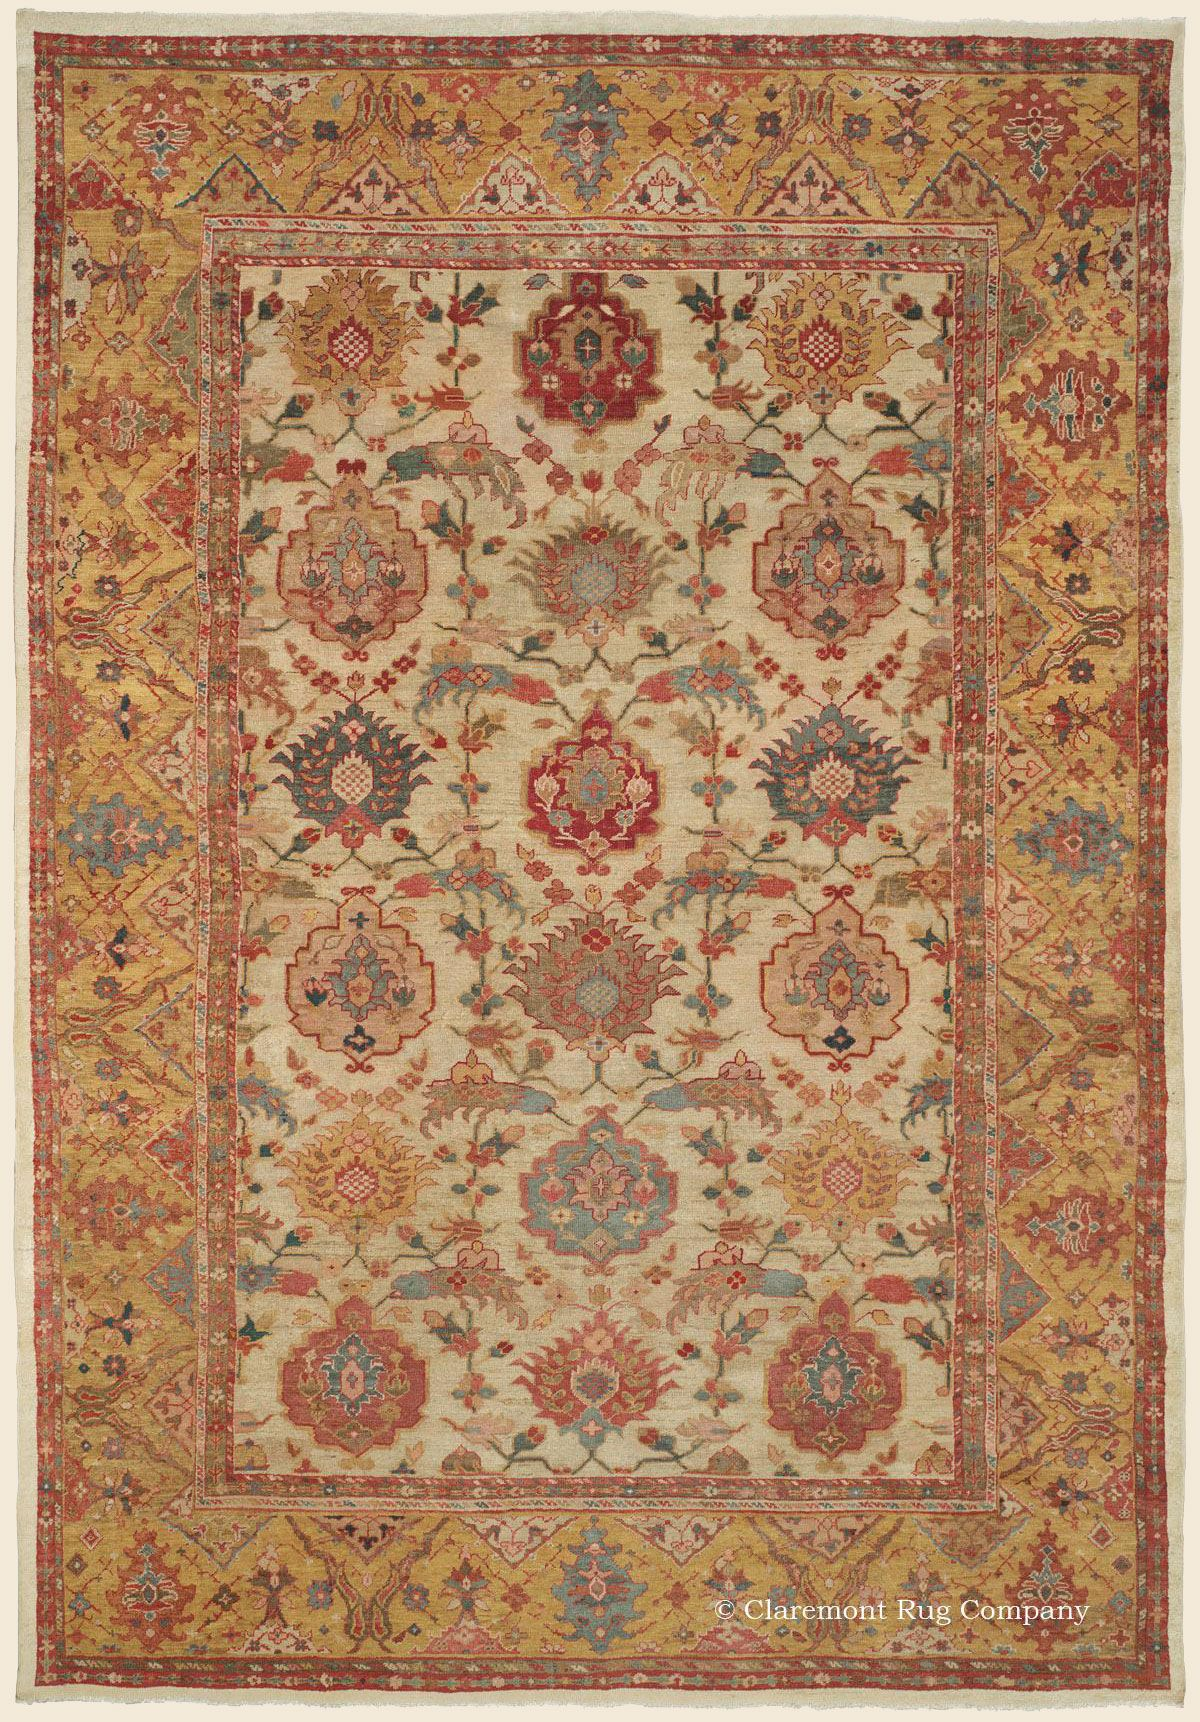 Sorry This Rug Is No Longer Available Persian Rug Designs Claremont Rug Company Antique Persian Carpet